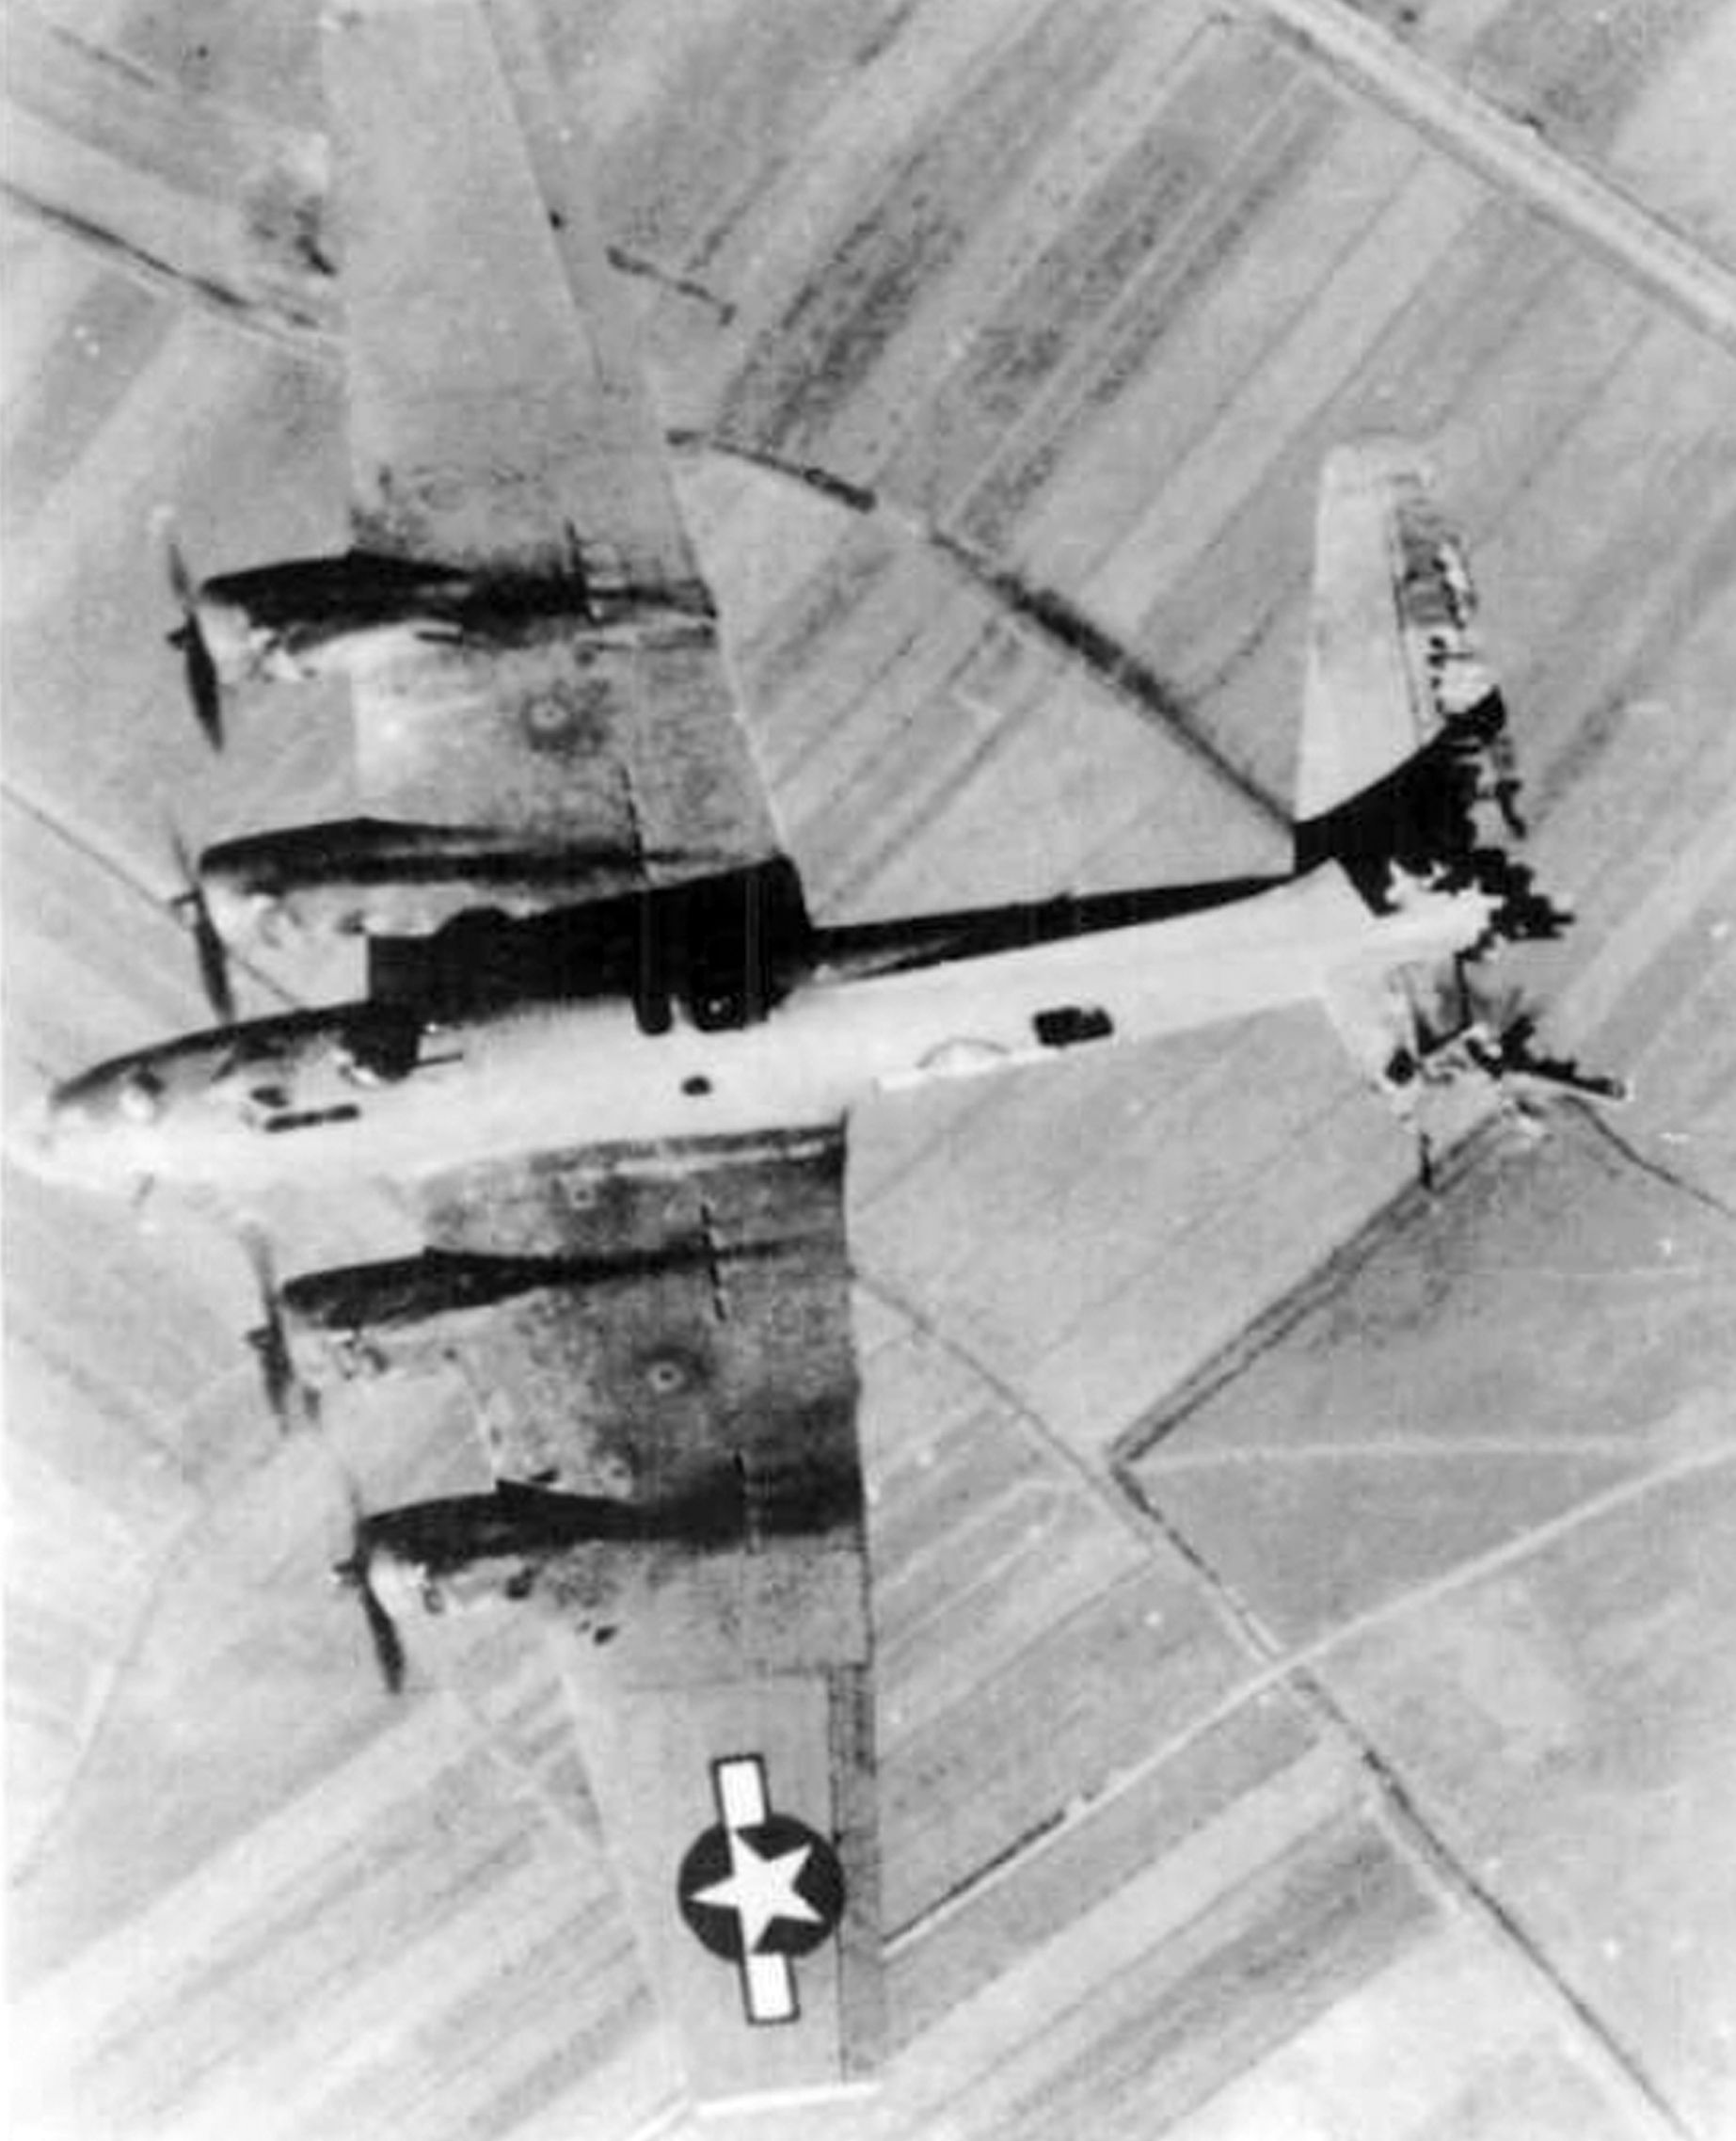 While flying over Italy, this B-17 had most of her tail shot away.  Still, the pilot managed to get her home.  When she was hit, the tail-gunner was blown out into her slipstream.  Miraculously, he was uninjured and managed to get his chute open and land safely.  Once on the ground, the greatest threat was not German or Italian soldiers, who usually took them prisoner, but scared or angry peasants who had been told that Brits and Yanks were savage murderous rapists who should be killed on…